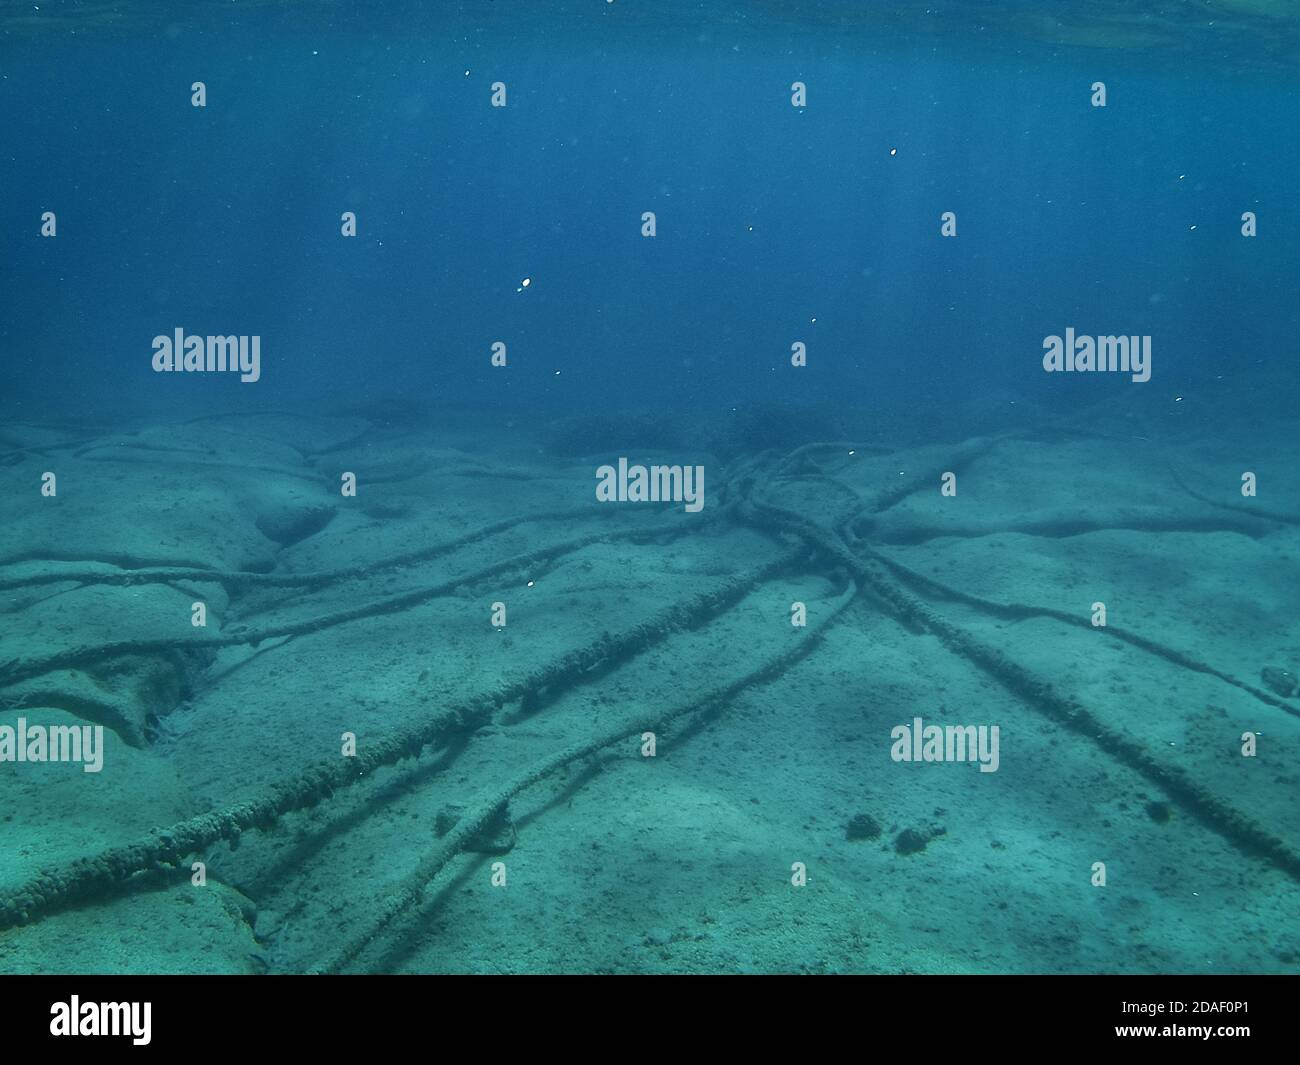 Underwater cables on the ocean floor in the Mediterranean Sea. Stock Photo